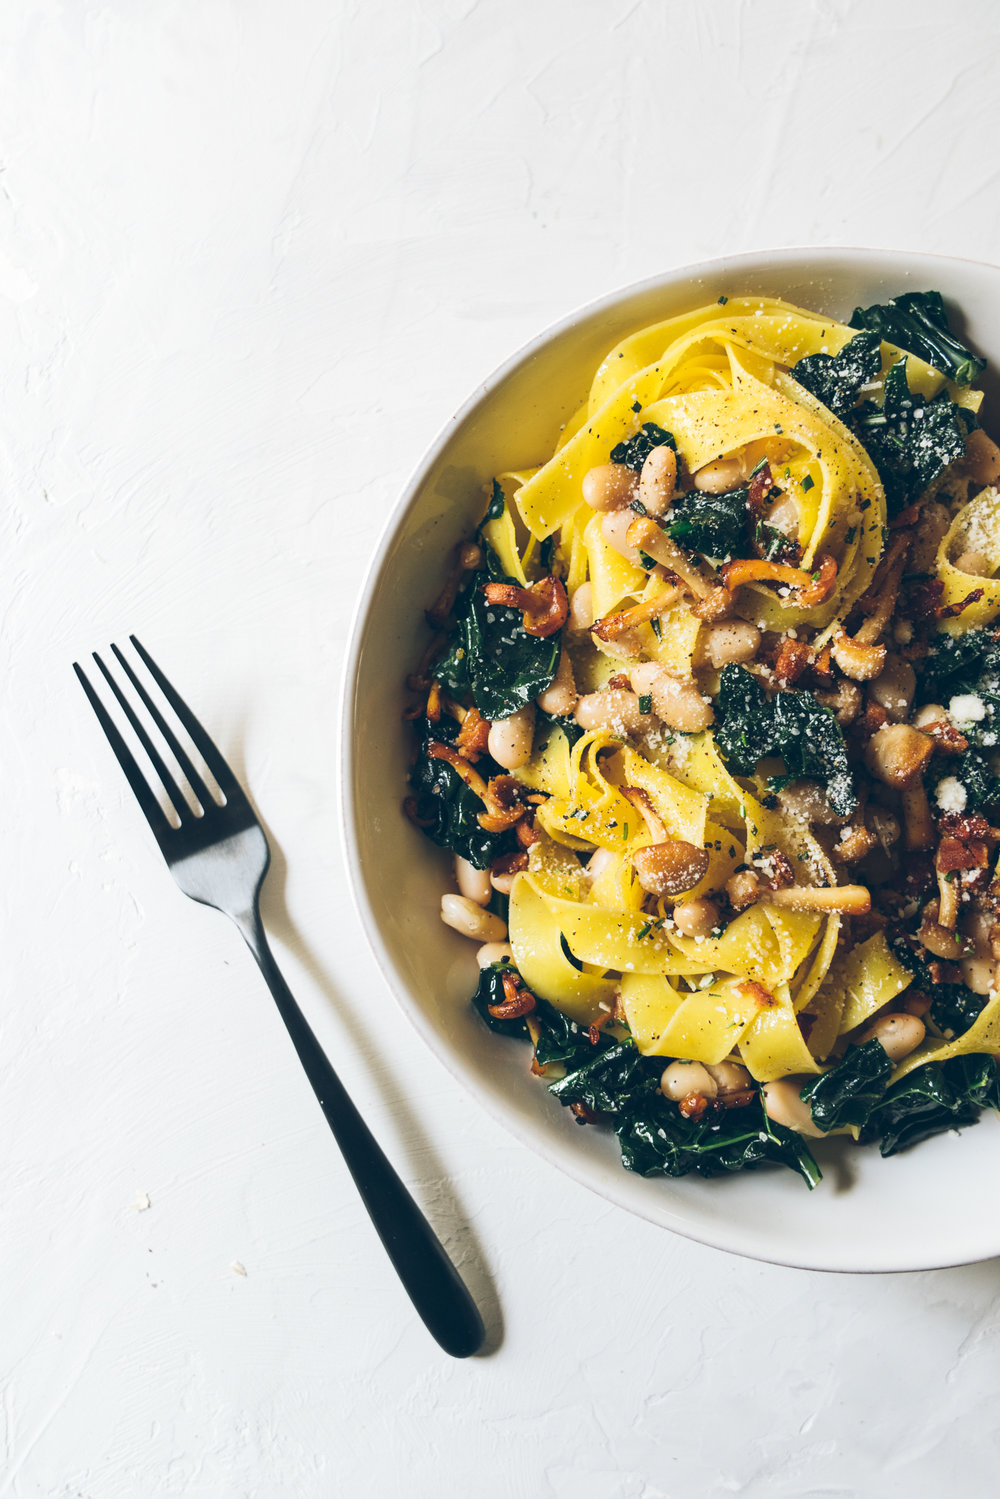 Winter White Bean Kale Pappardelle Pasta